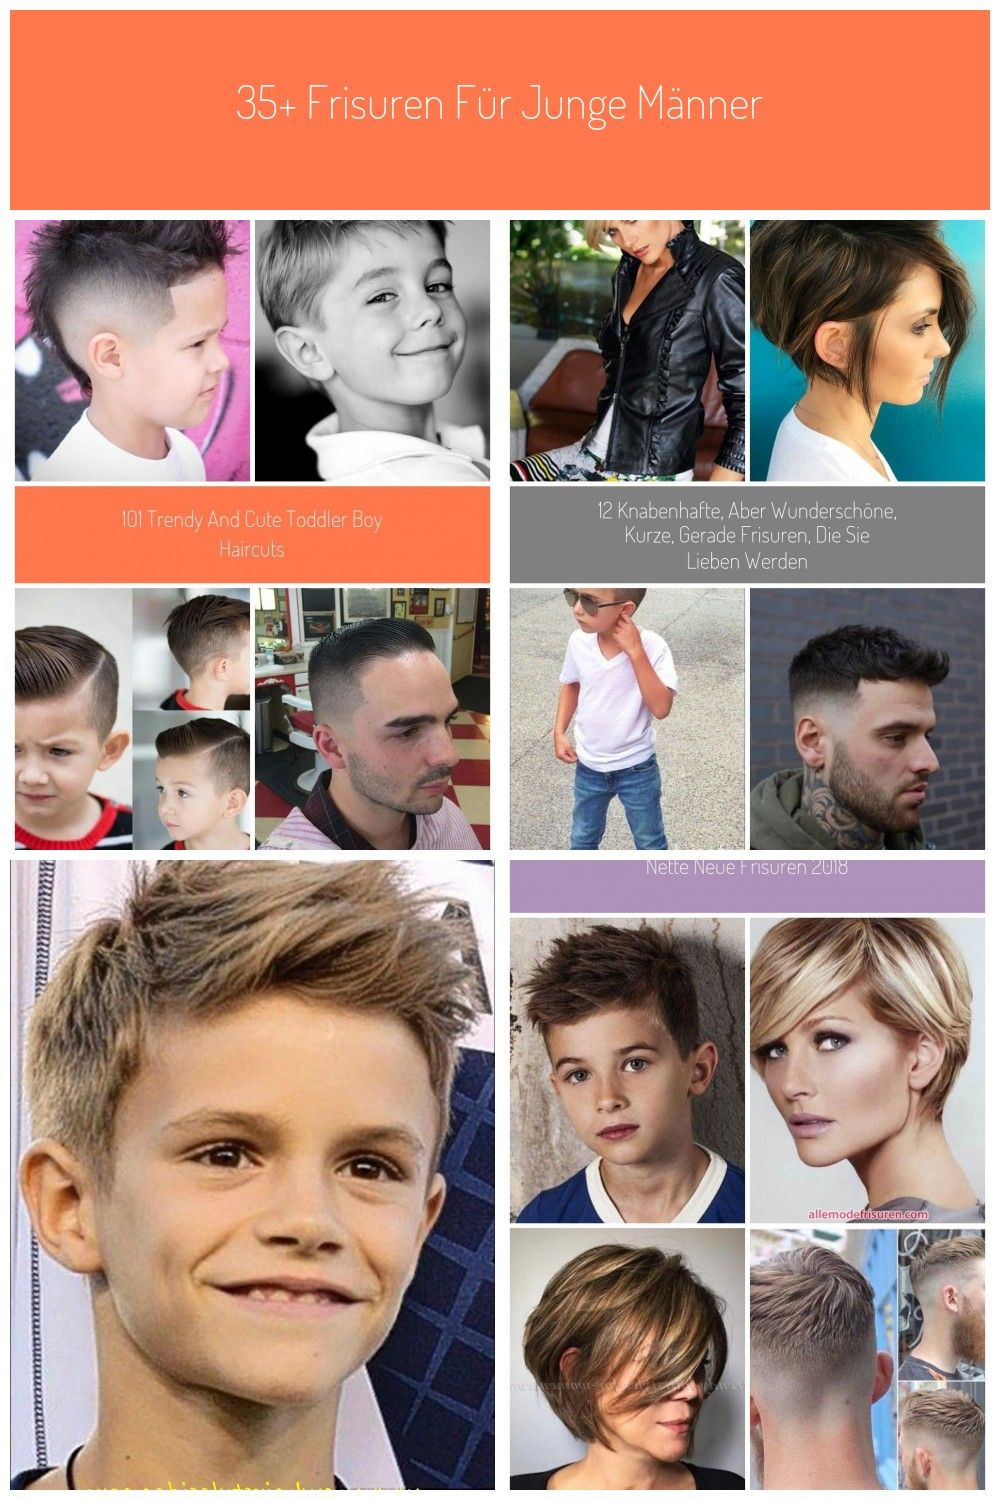 Little Boy Haircuts 12 #Kurze Haarschnitte junge 12 Trendy and